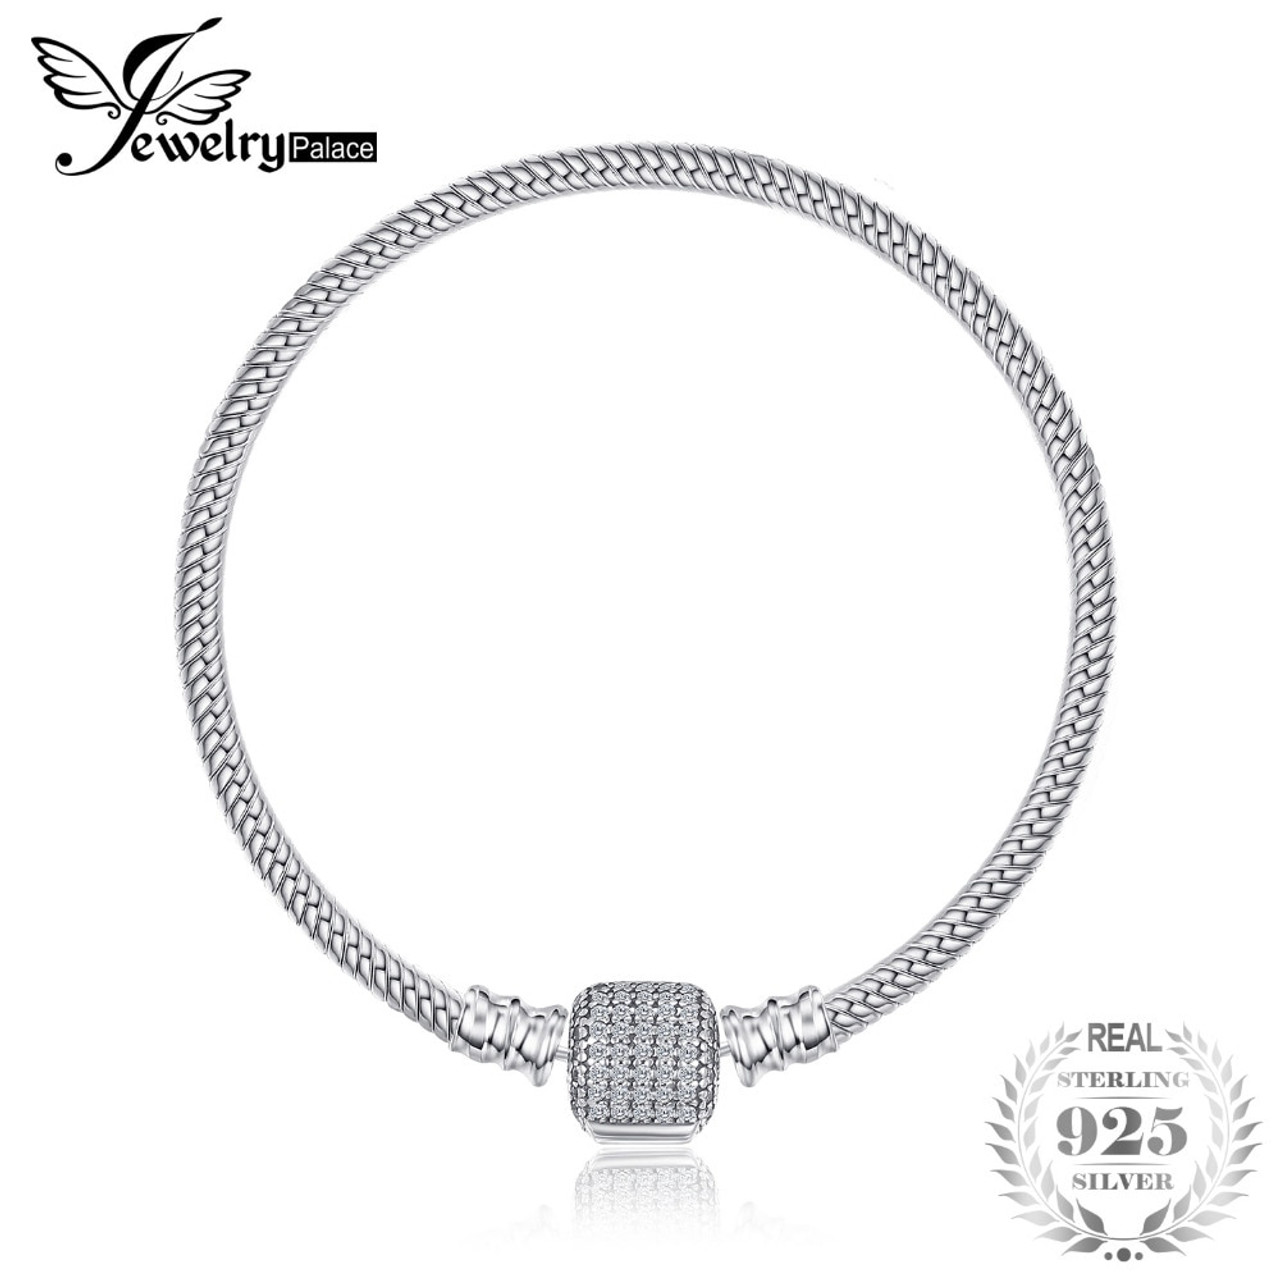 932211af0e535 Jewelrypalace Solid 925 Sterling Silver Elegant Signature Clasp Bracelets  16-19cm Gifts For Women Anniversary ...